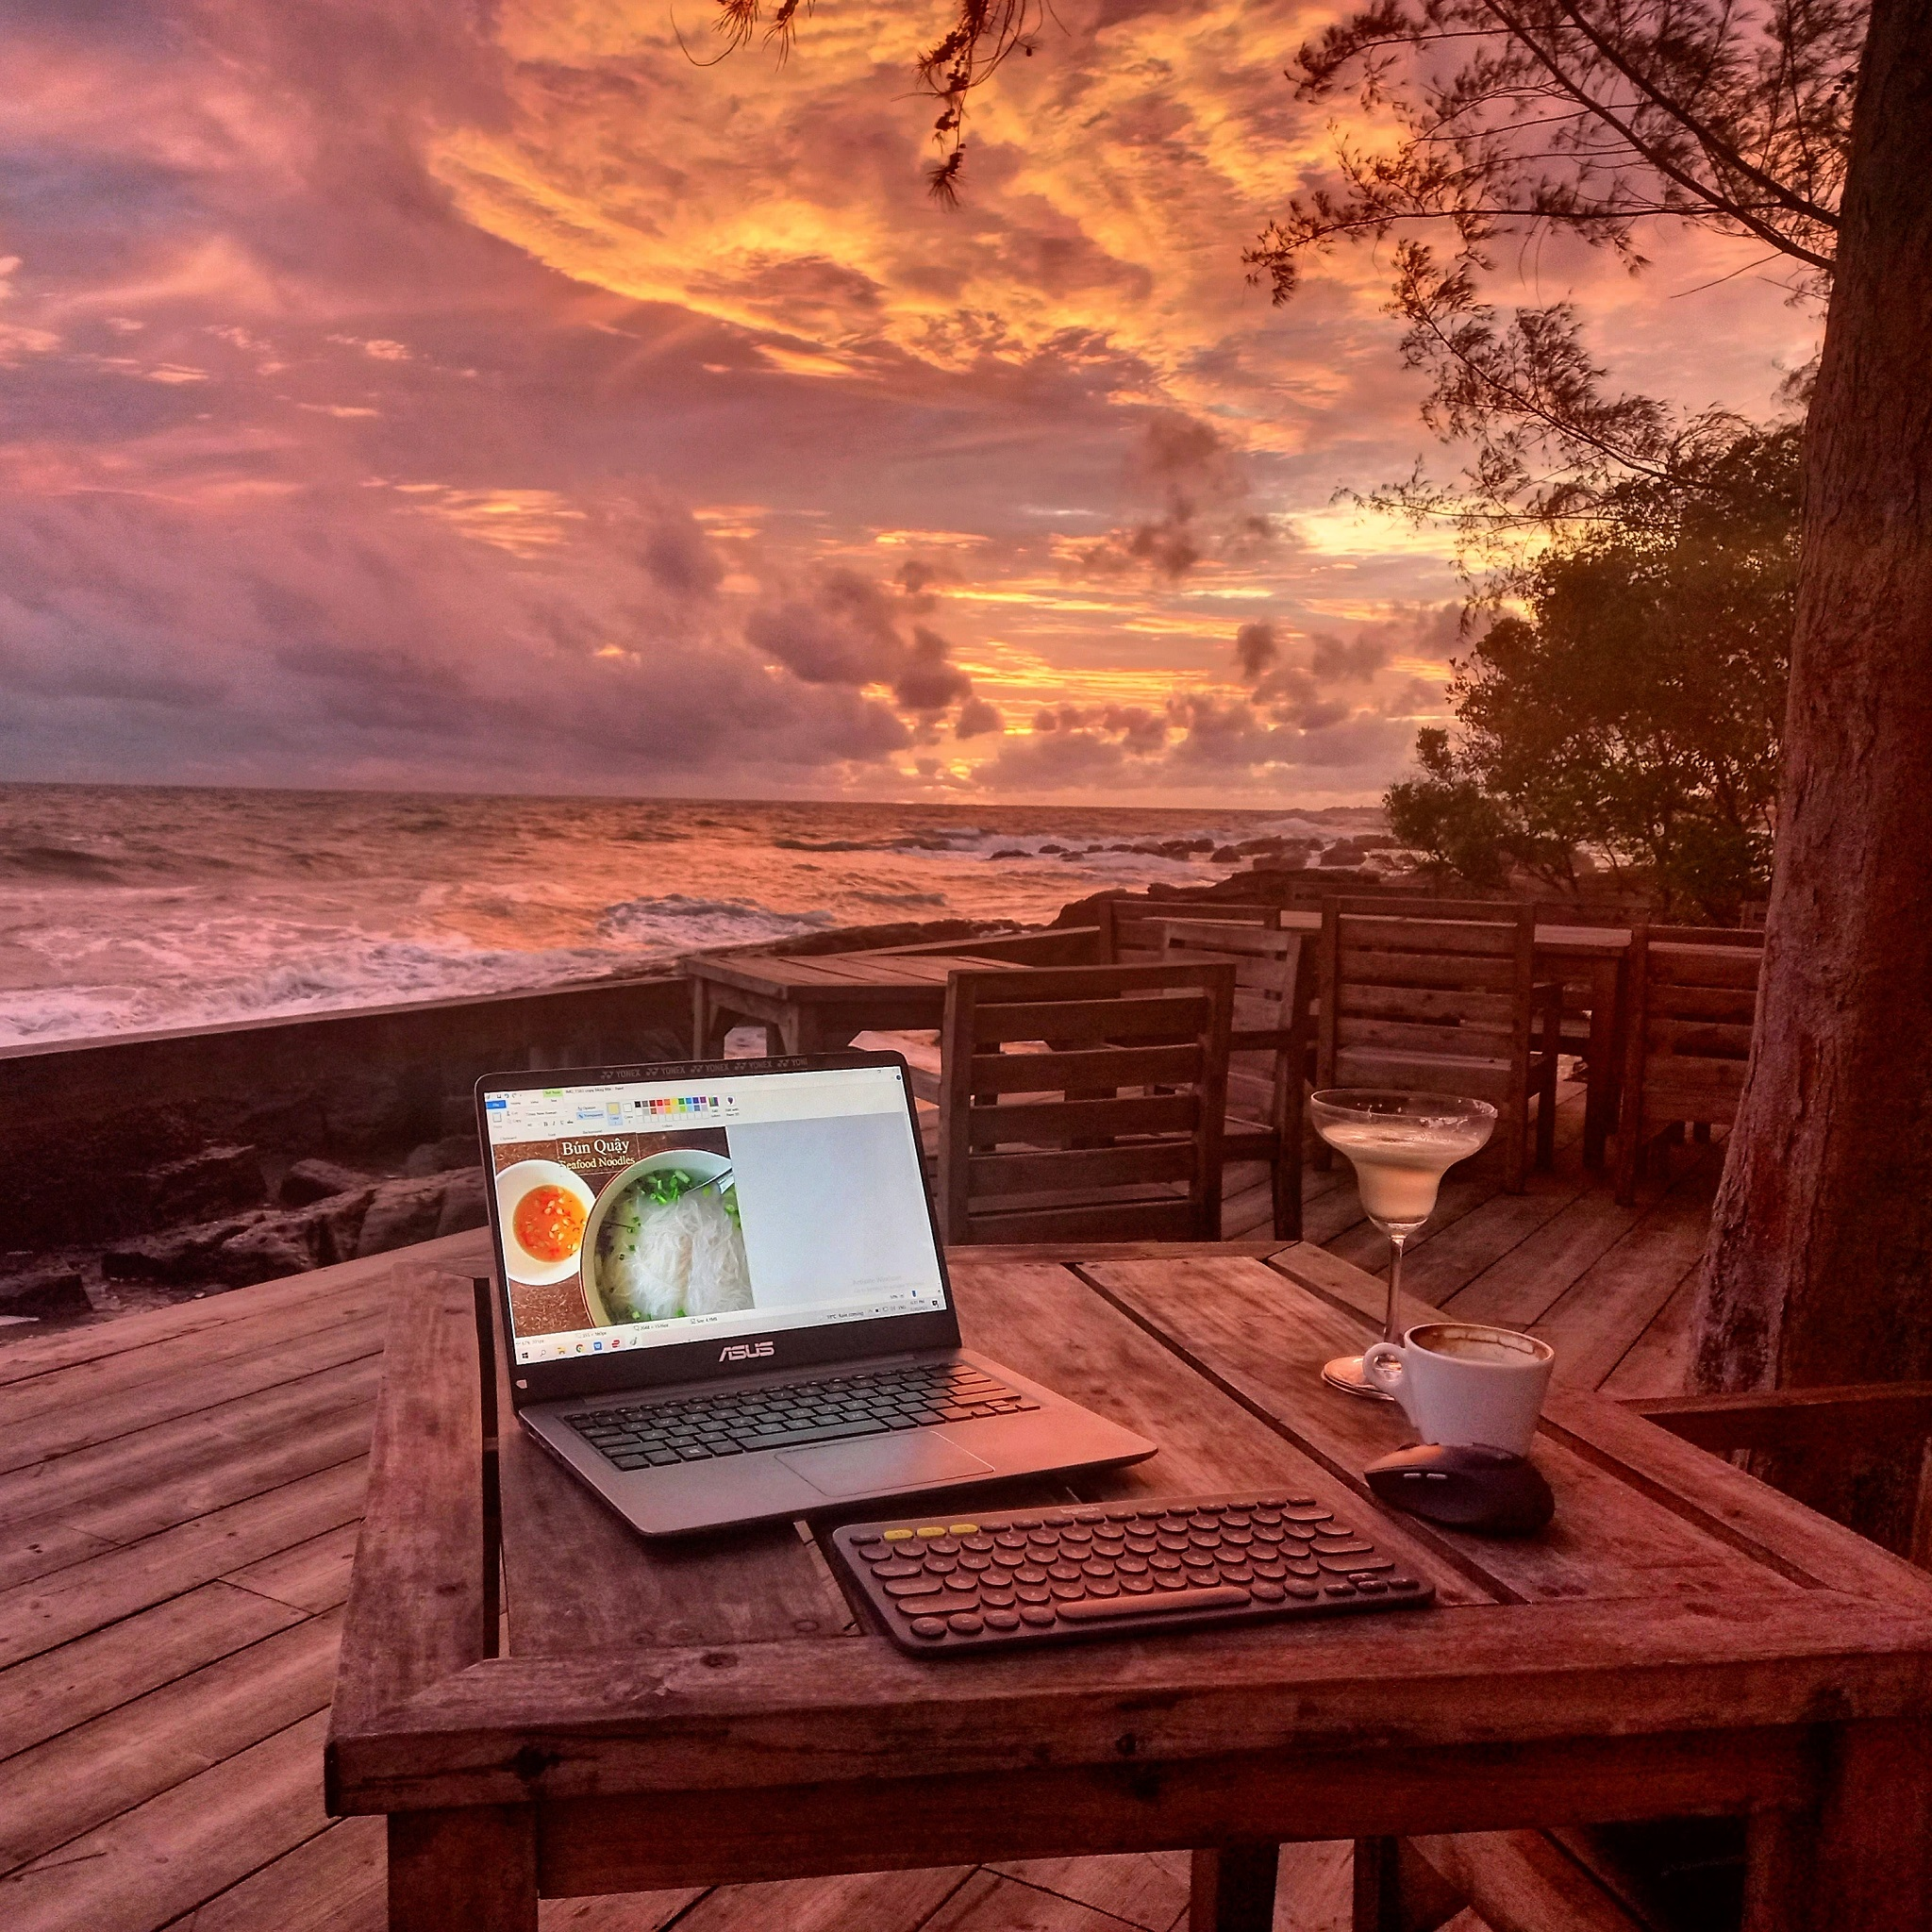 Celebrating to completion of the website redesign on Phu Quoc Island, Vietnam